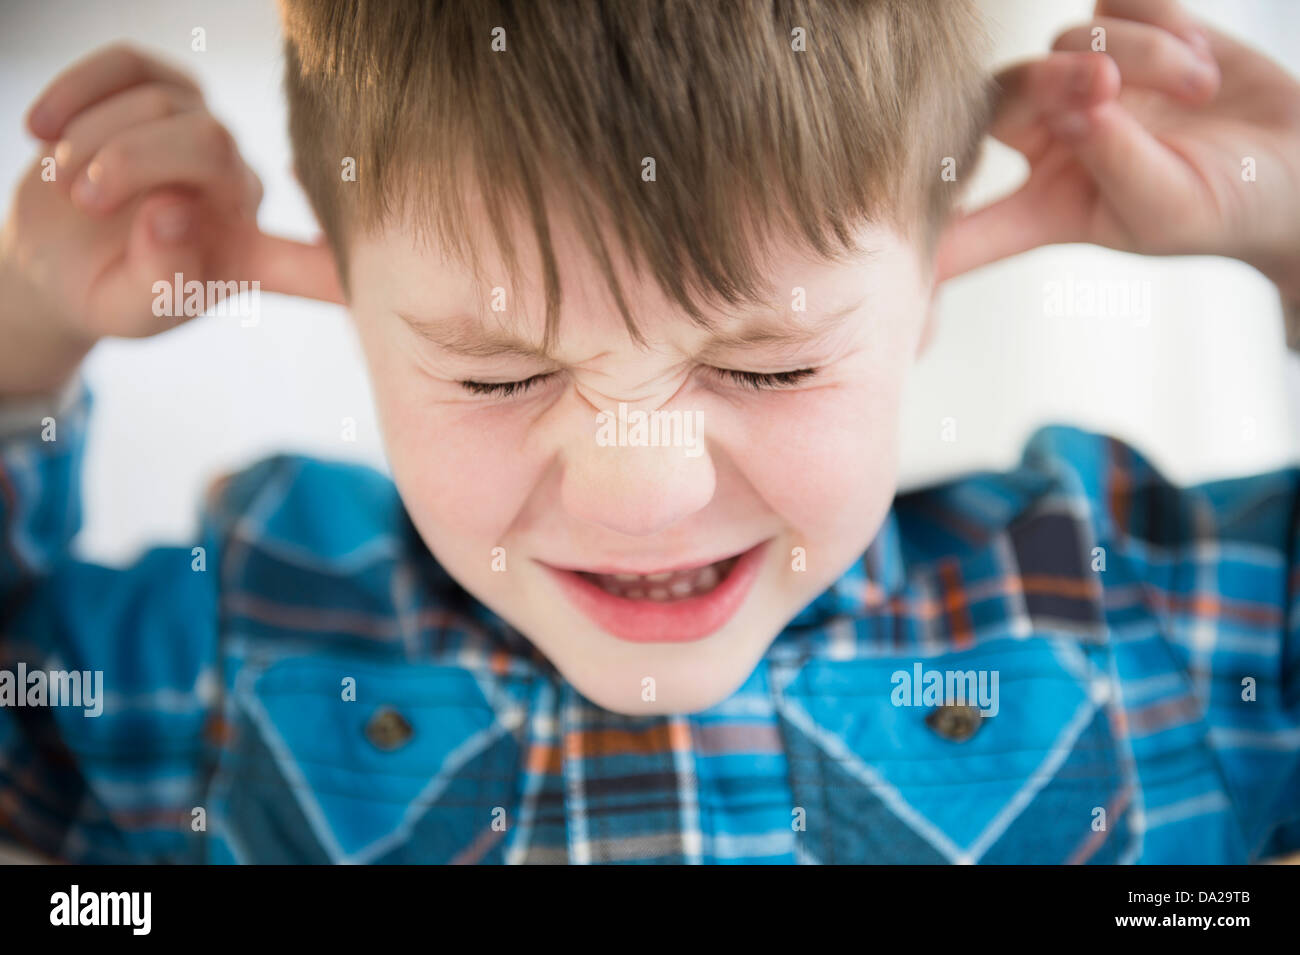 Portrait of boy (4-5) sticking fingers in his ears - Stock Image